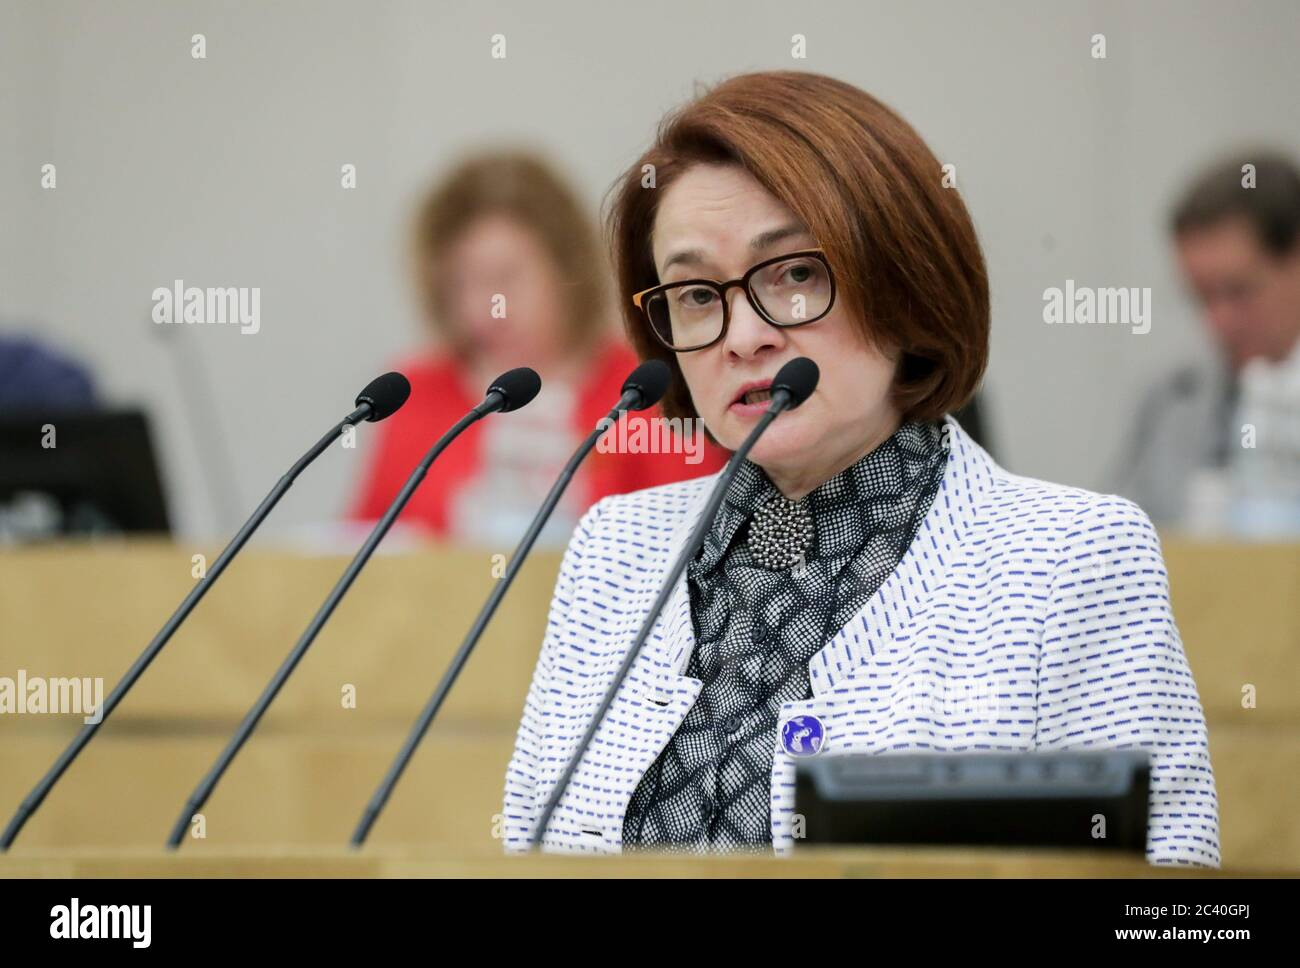 Moscow, Russia. 23rd June, 2020. Central Bank Governor Elvira Nabiullina addresses a plenary meeting of the Russian State Duma. Credit: Russian State Duma Photo Service/TASS/Alamy Live News Stock Photo